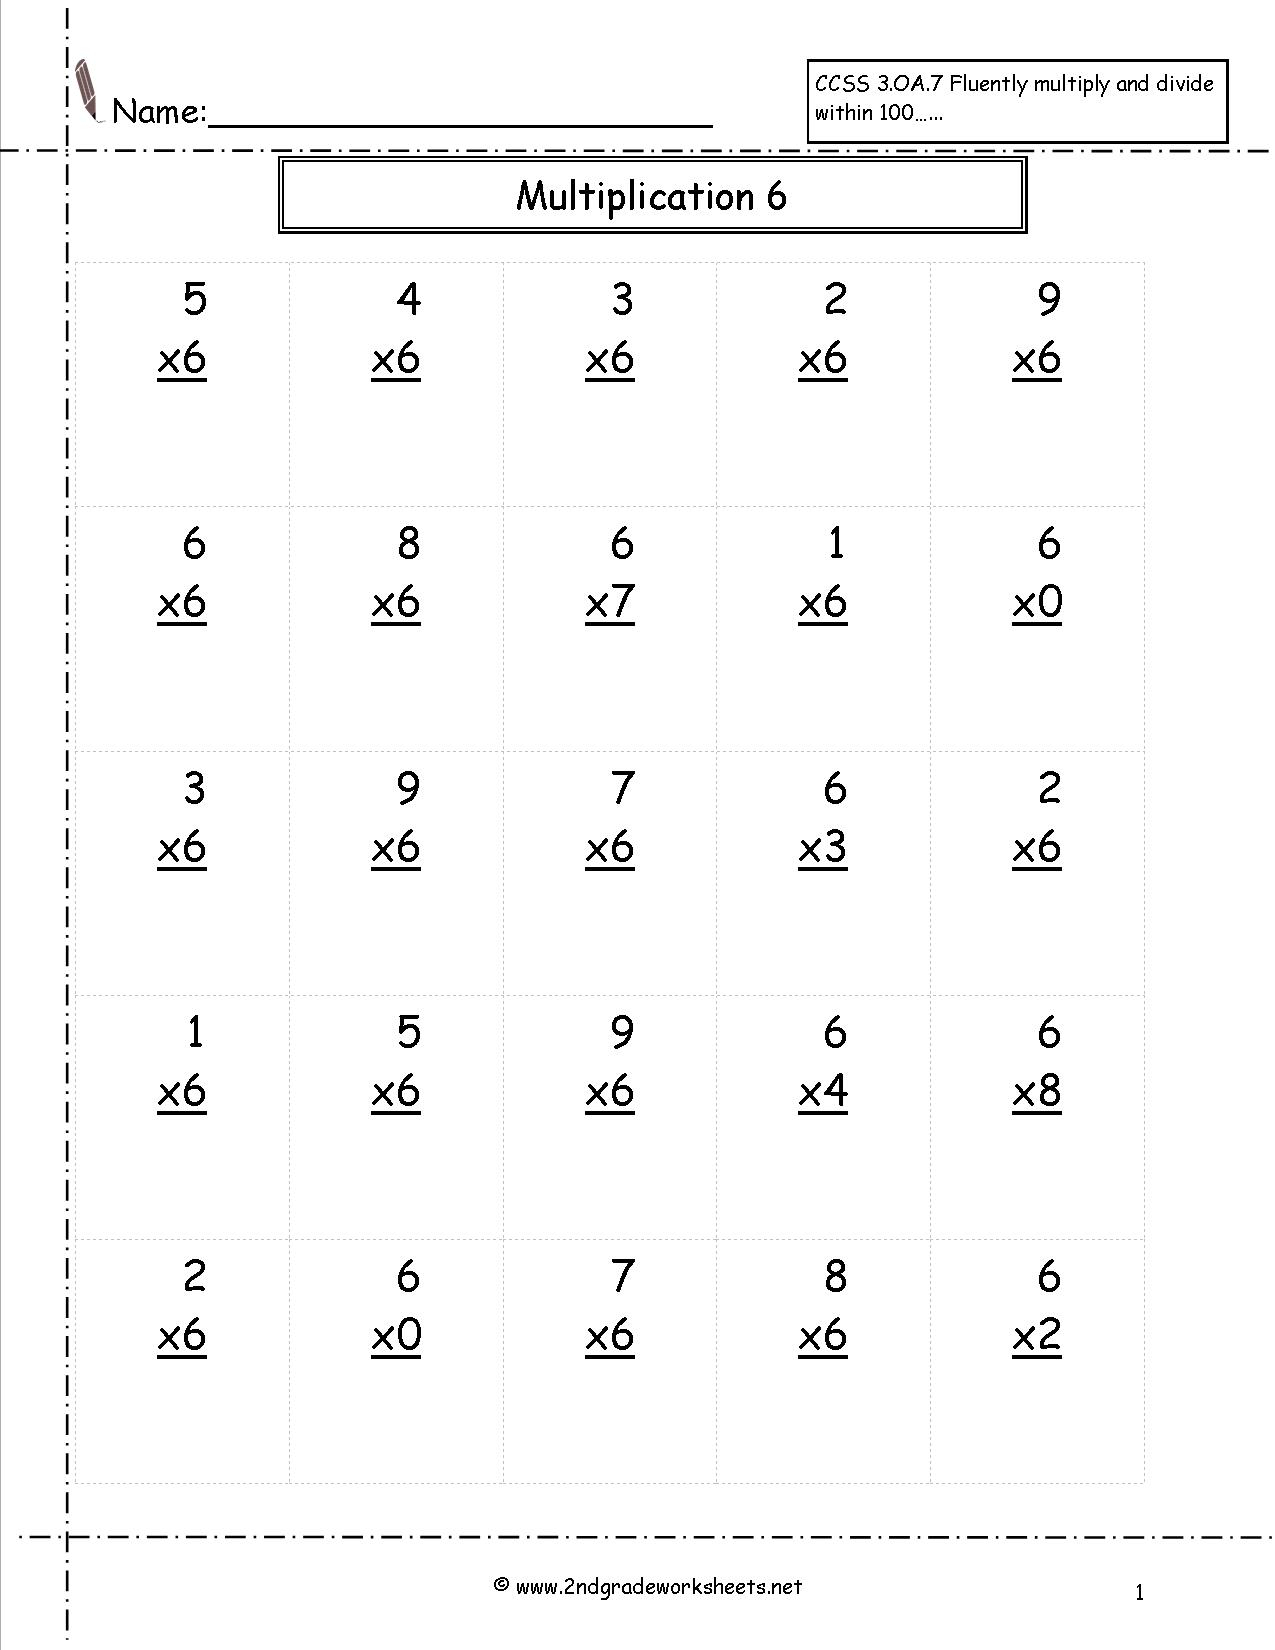 Multiplication - Lessons - Tes Teach pertaining to Multiplication Worksheets Up To 6